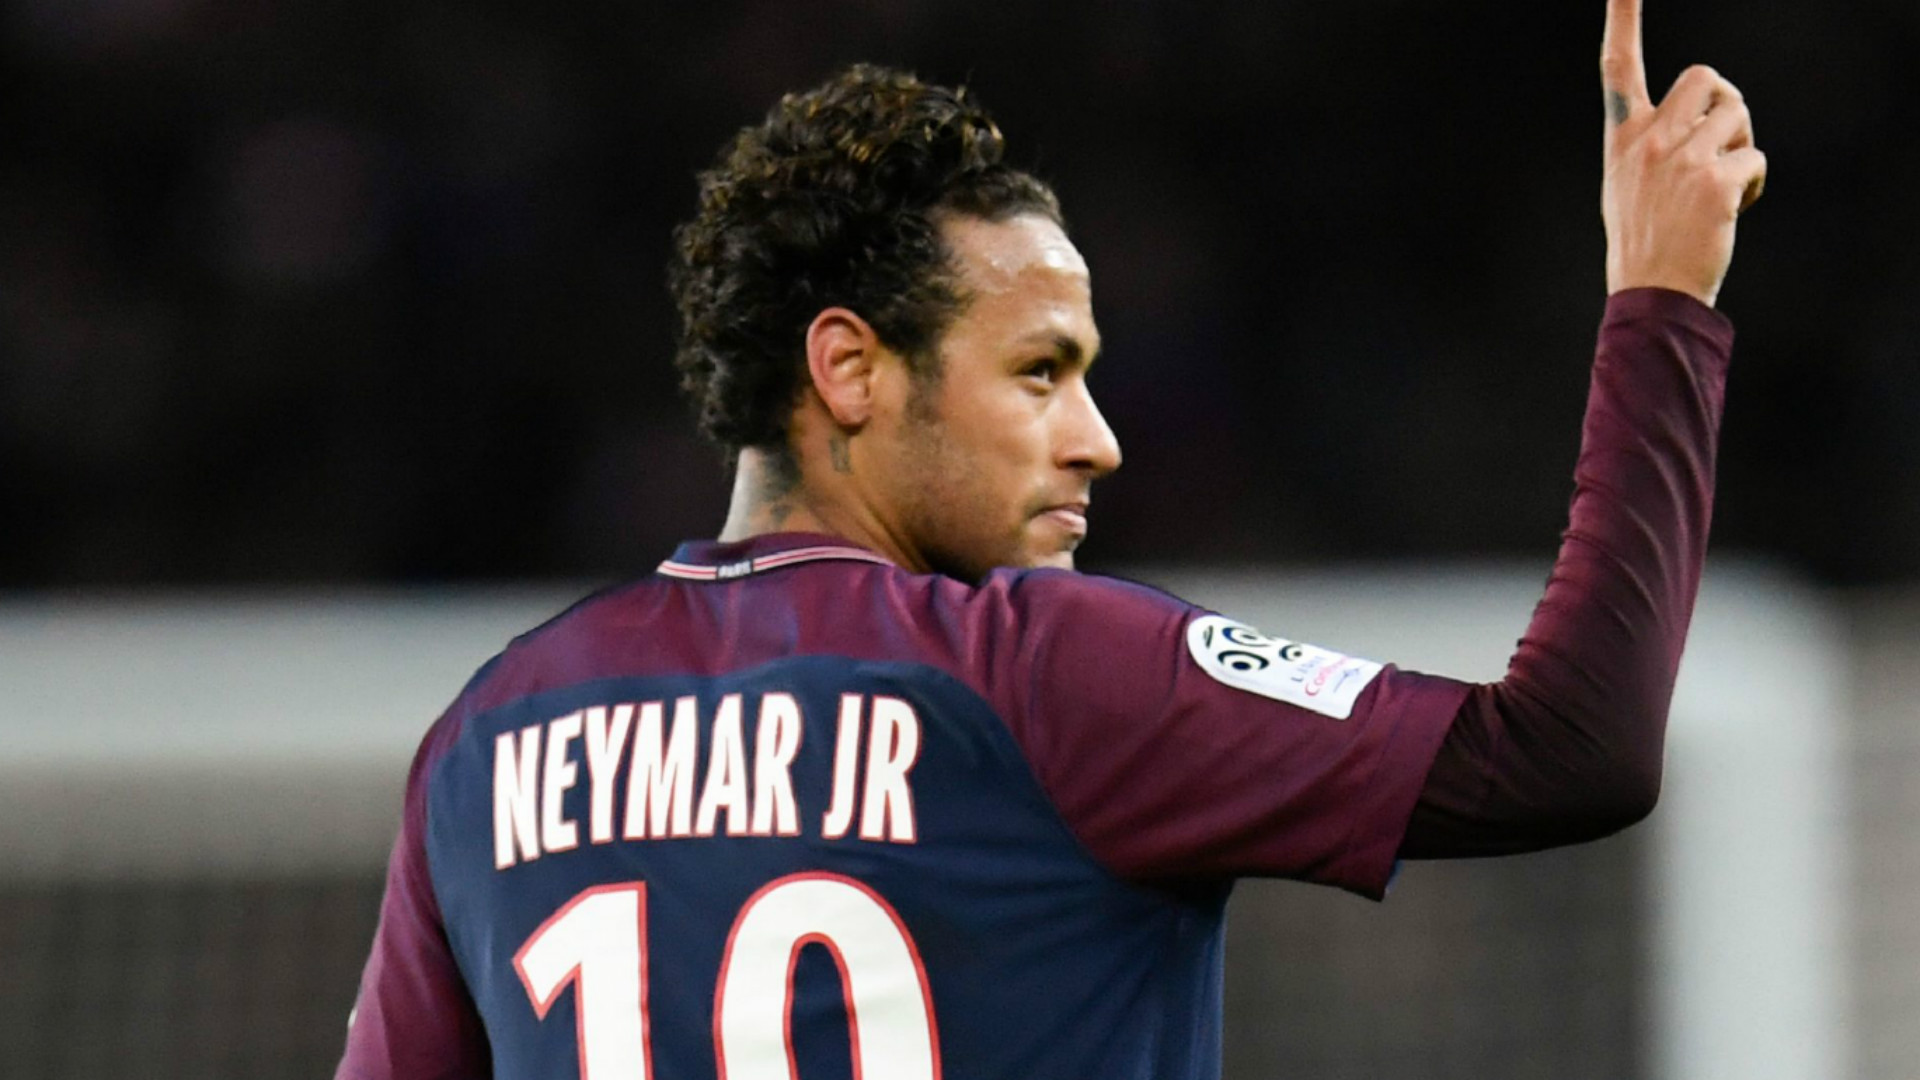 No generosity from Neymar as Cavani waits to make PSG history